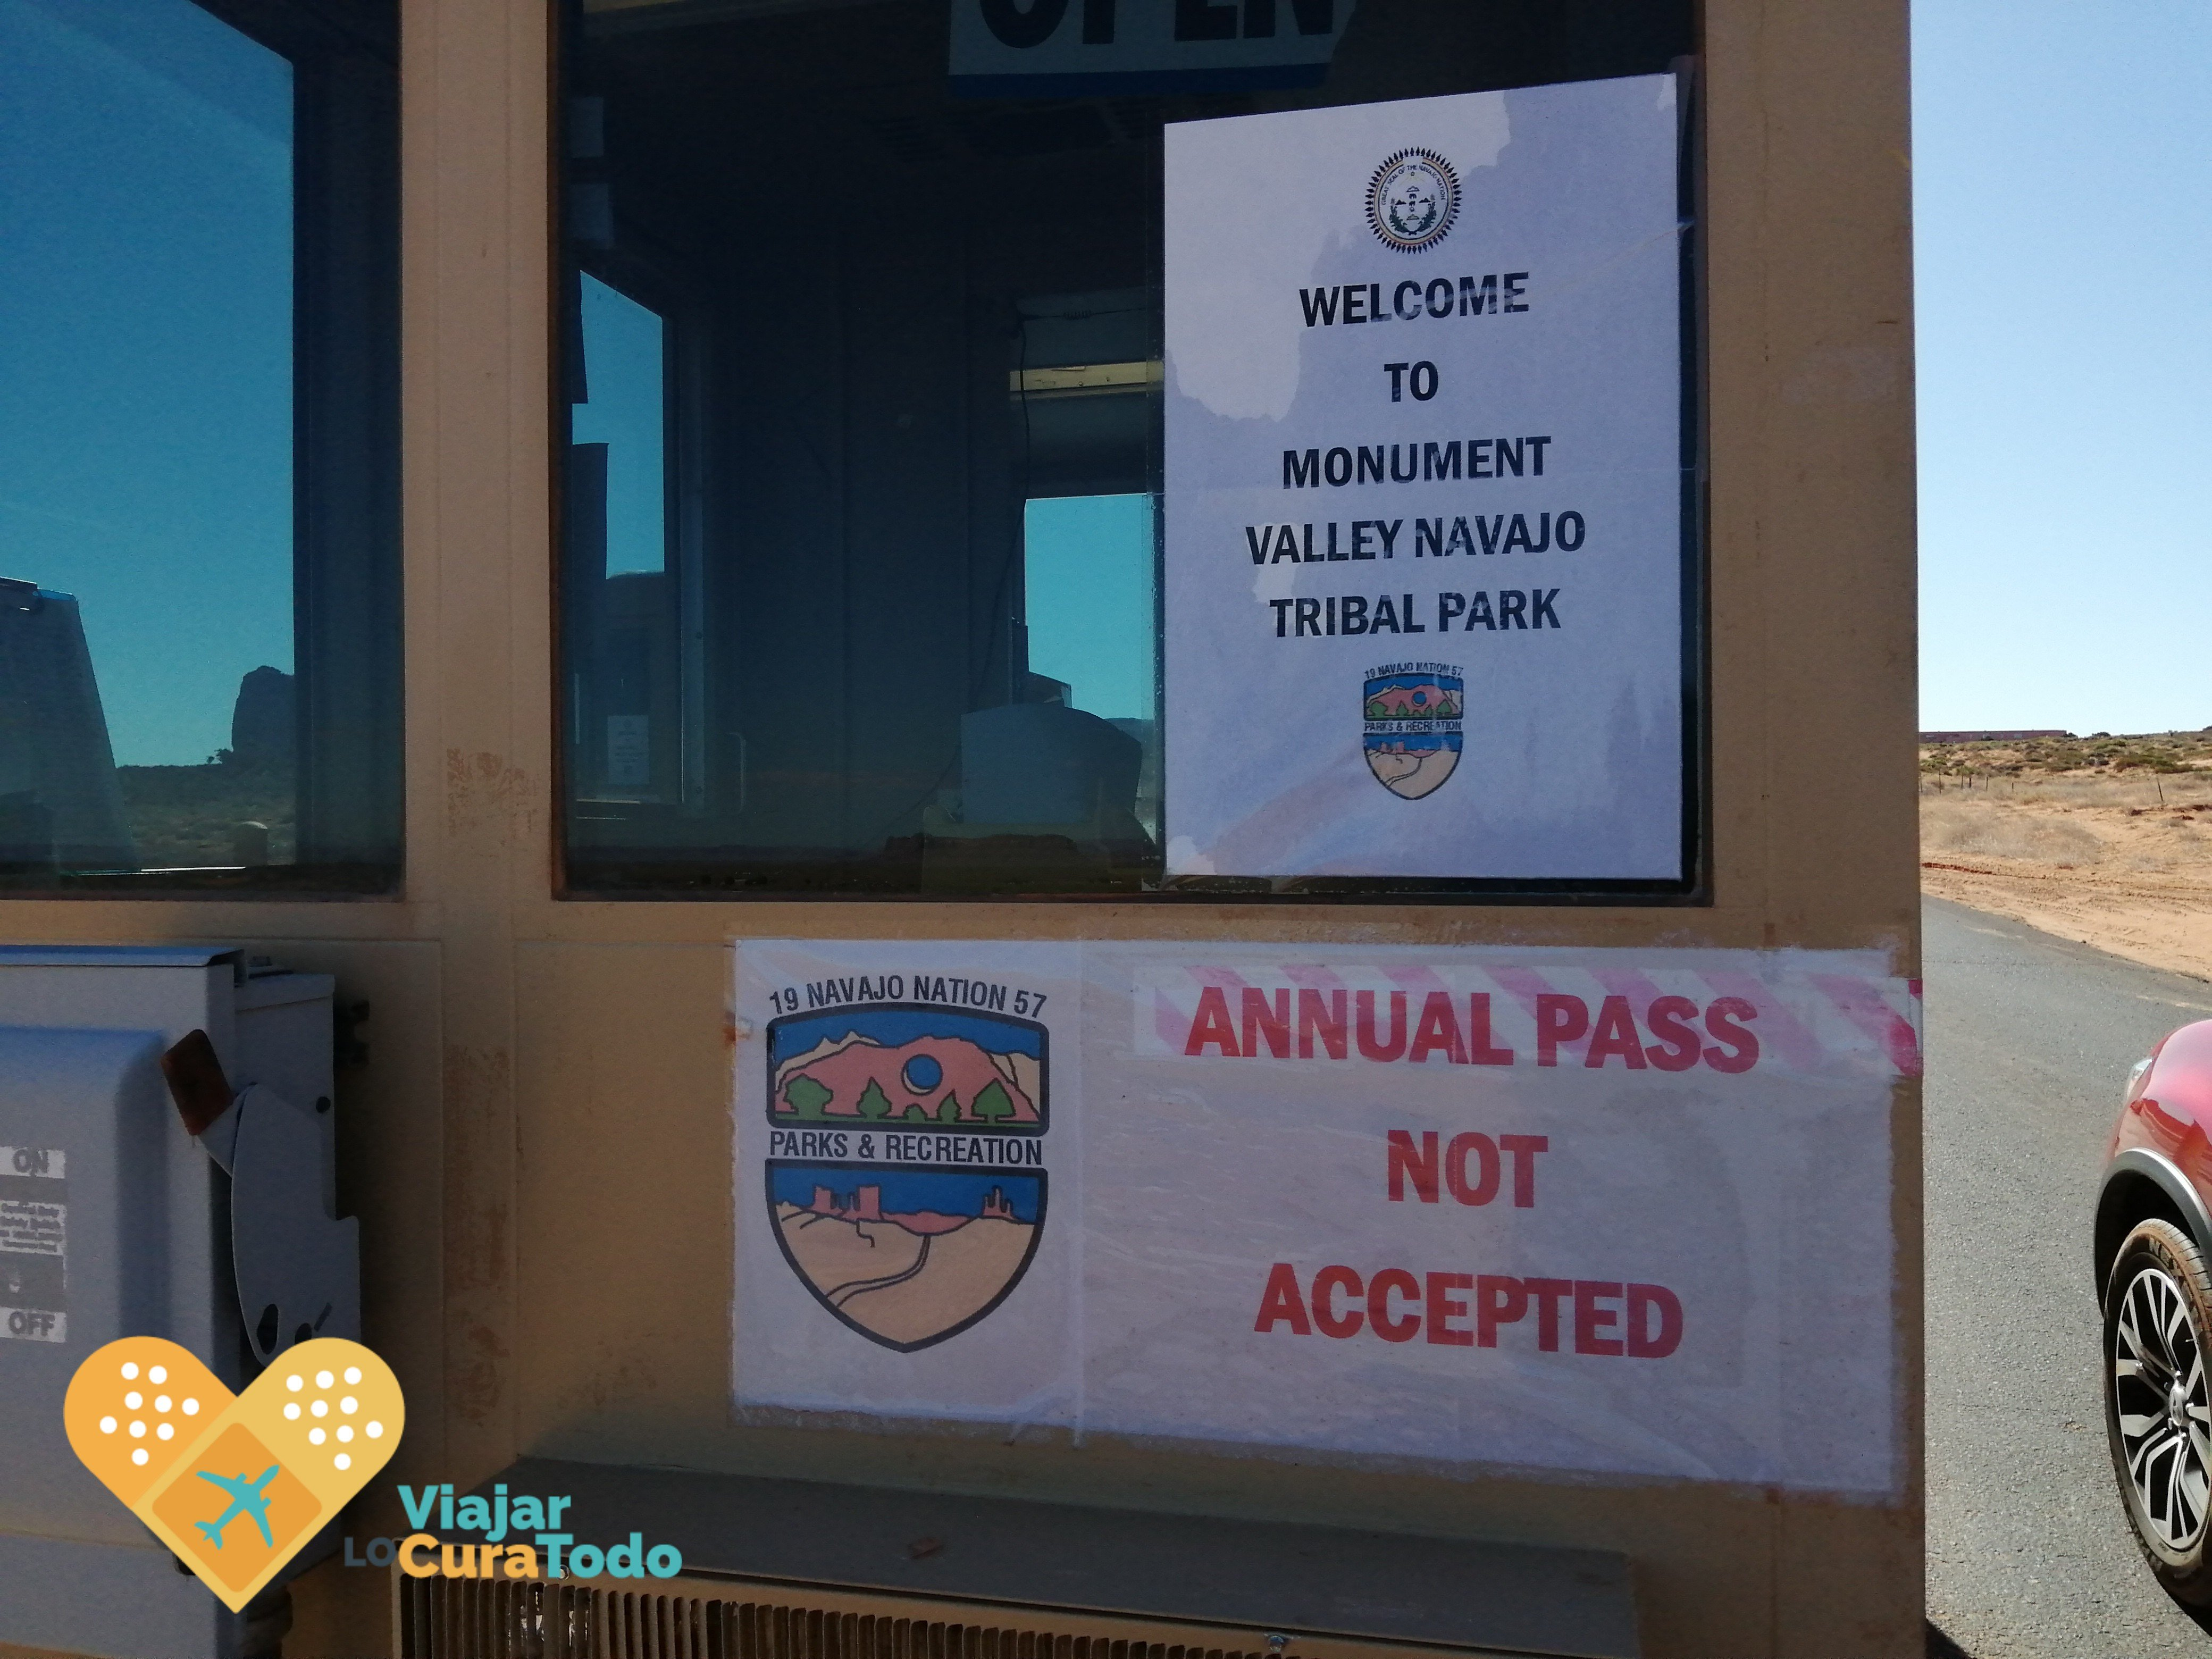 annual pass not accepted